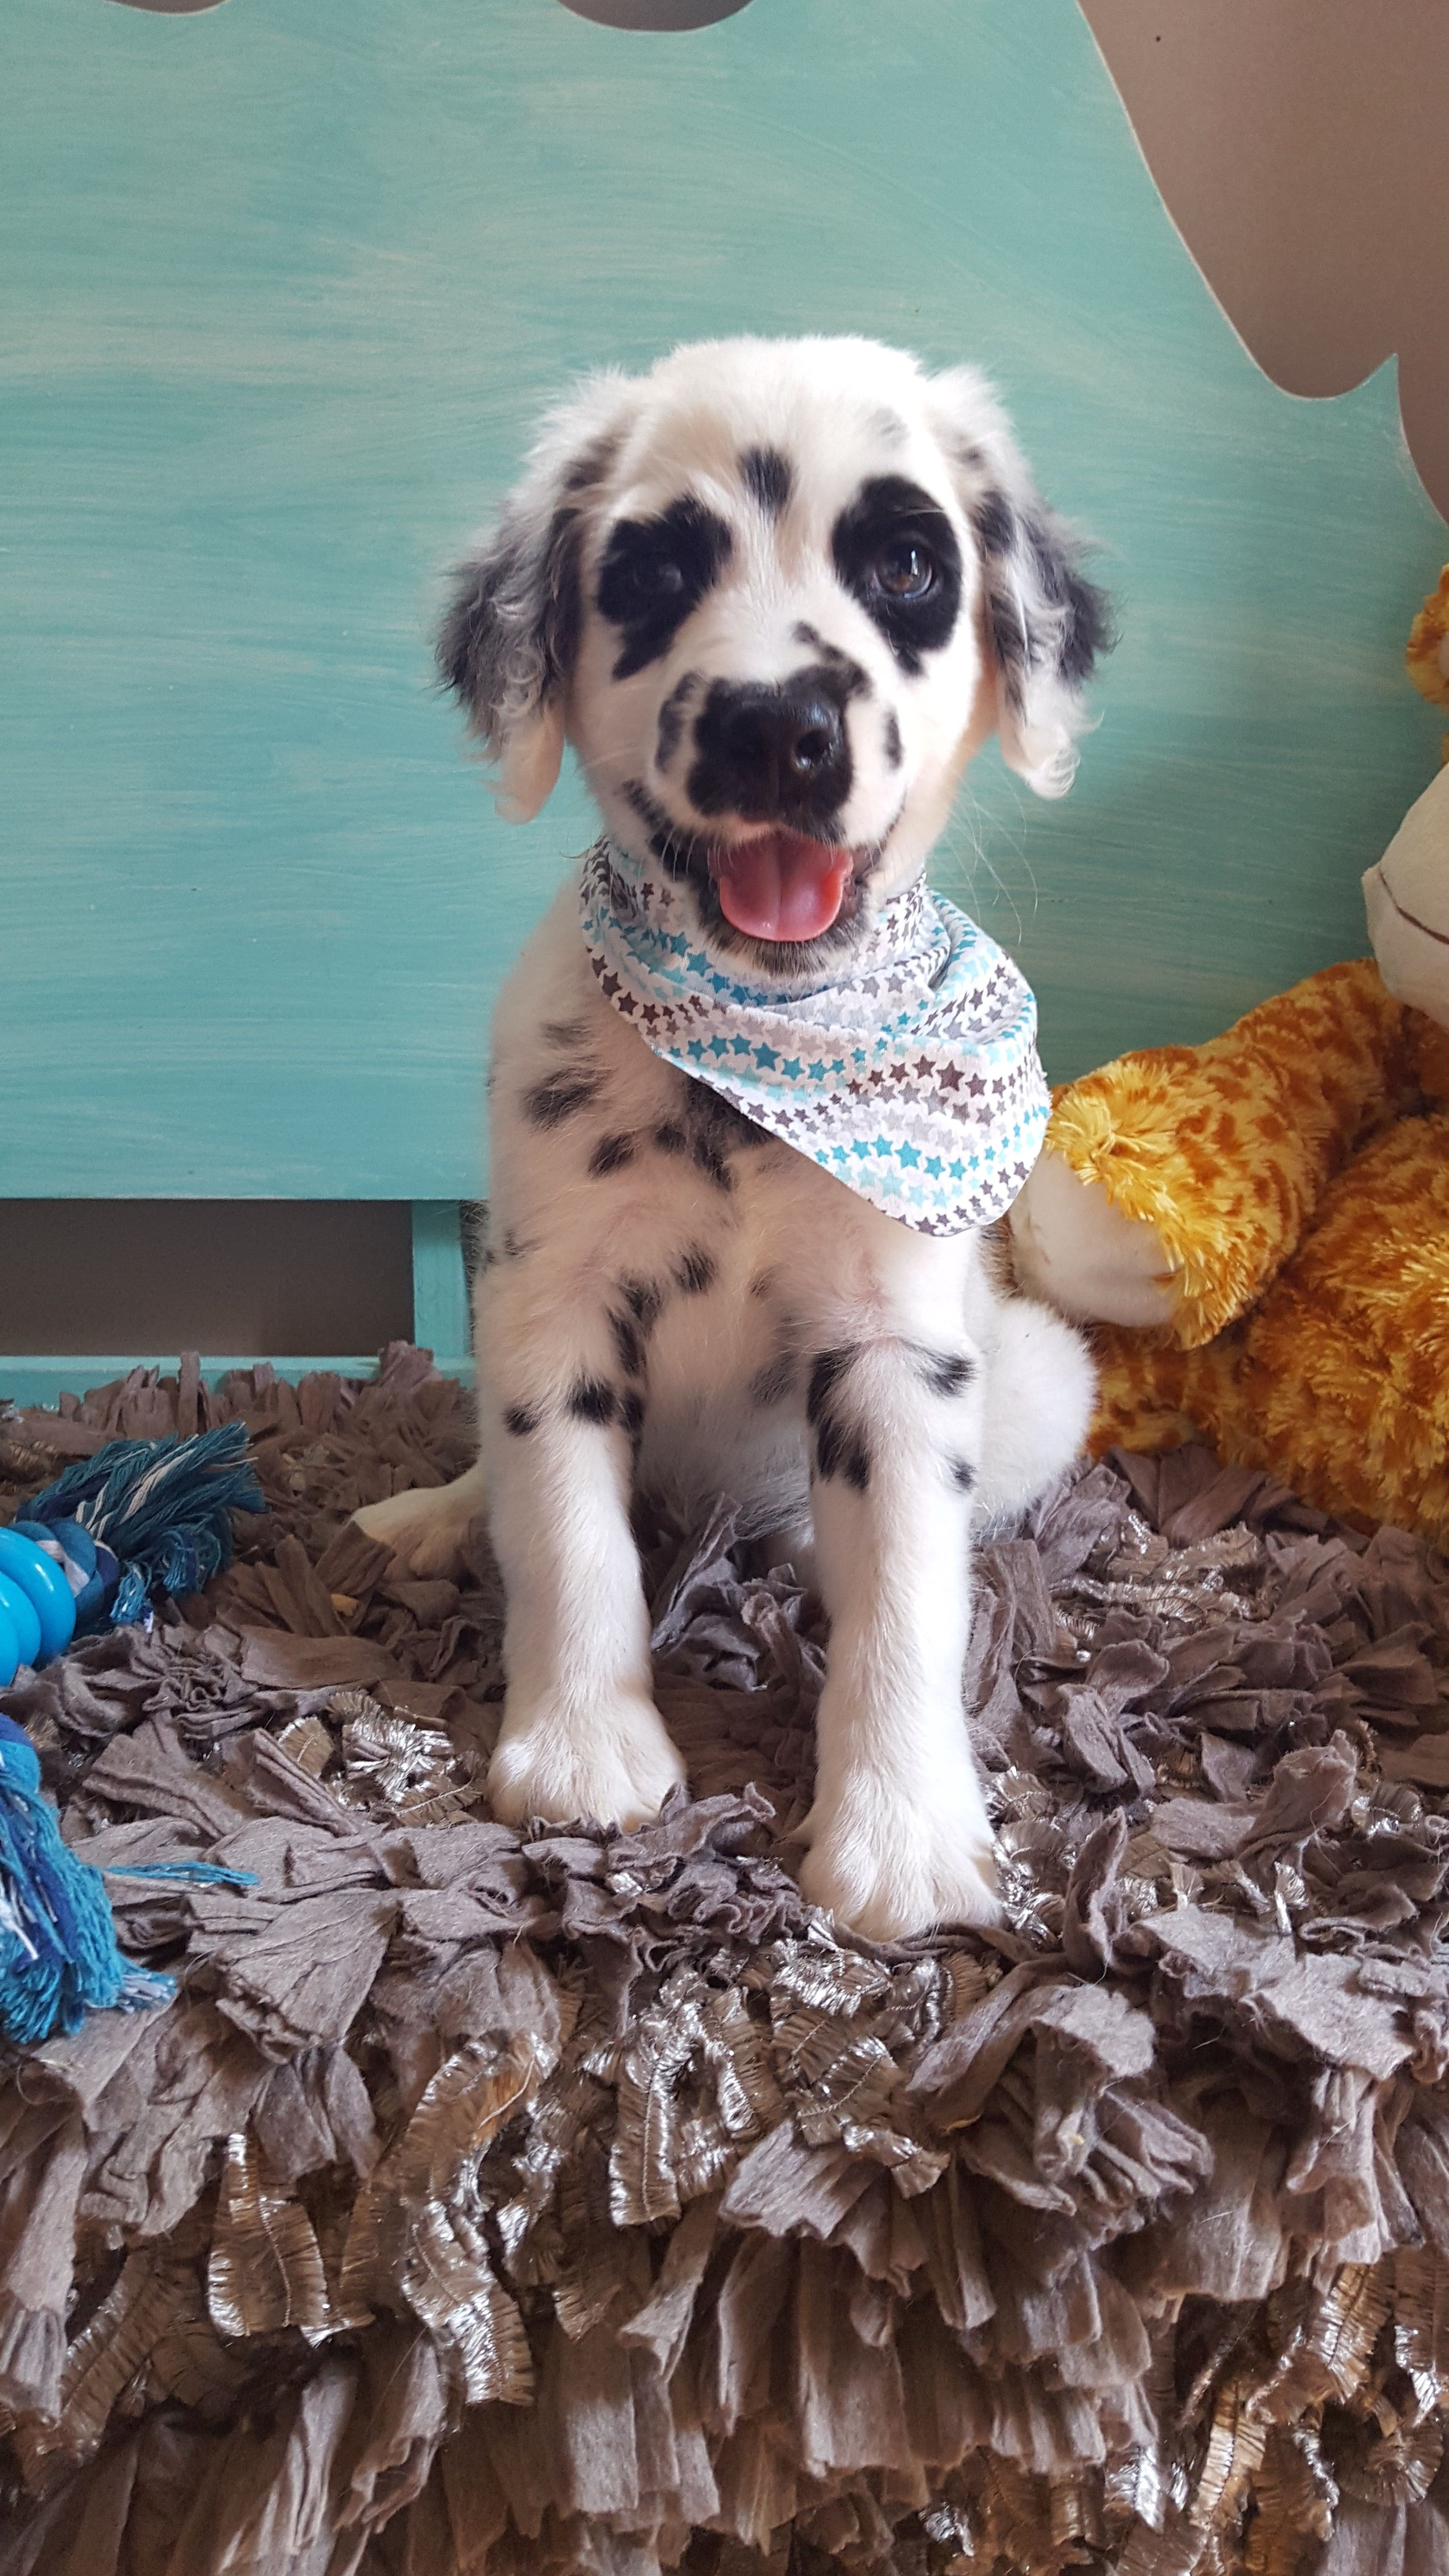 Long Haired Dalmatian Puppy For Sale : haired, dalmatian, puppy, IT!!!!, There, Thing, Dalmatians!!!, Animals,, Animals, Beautiful